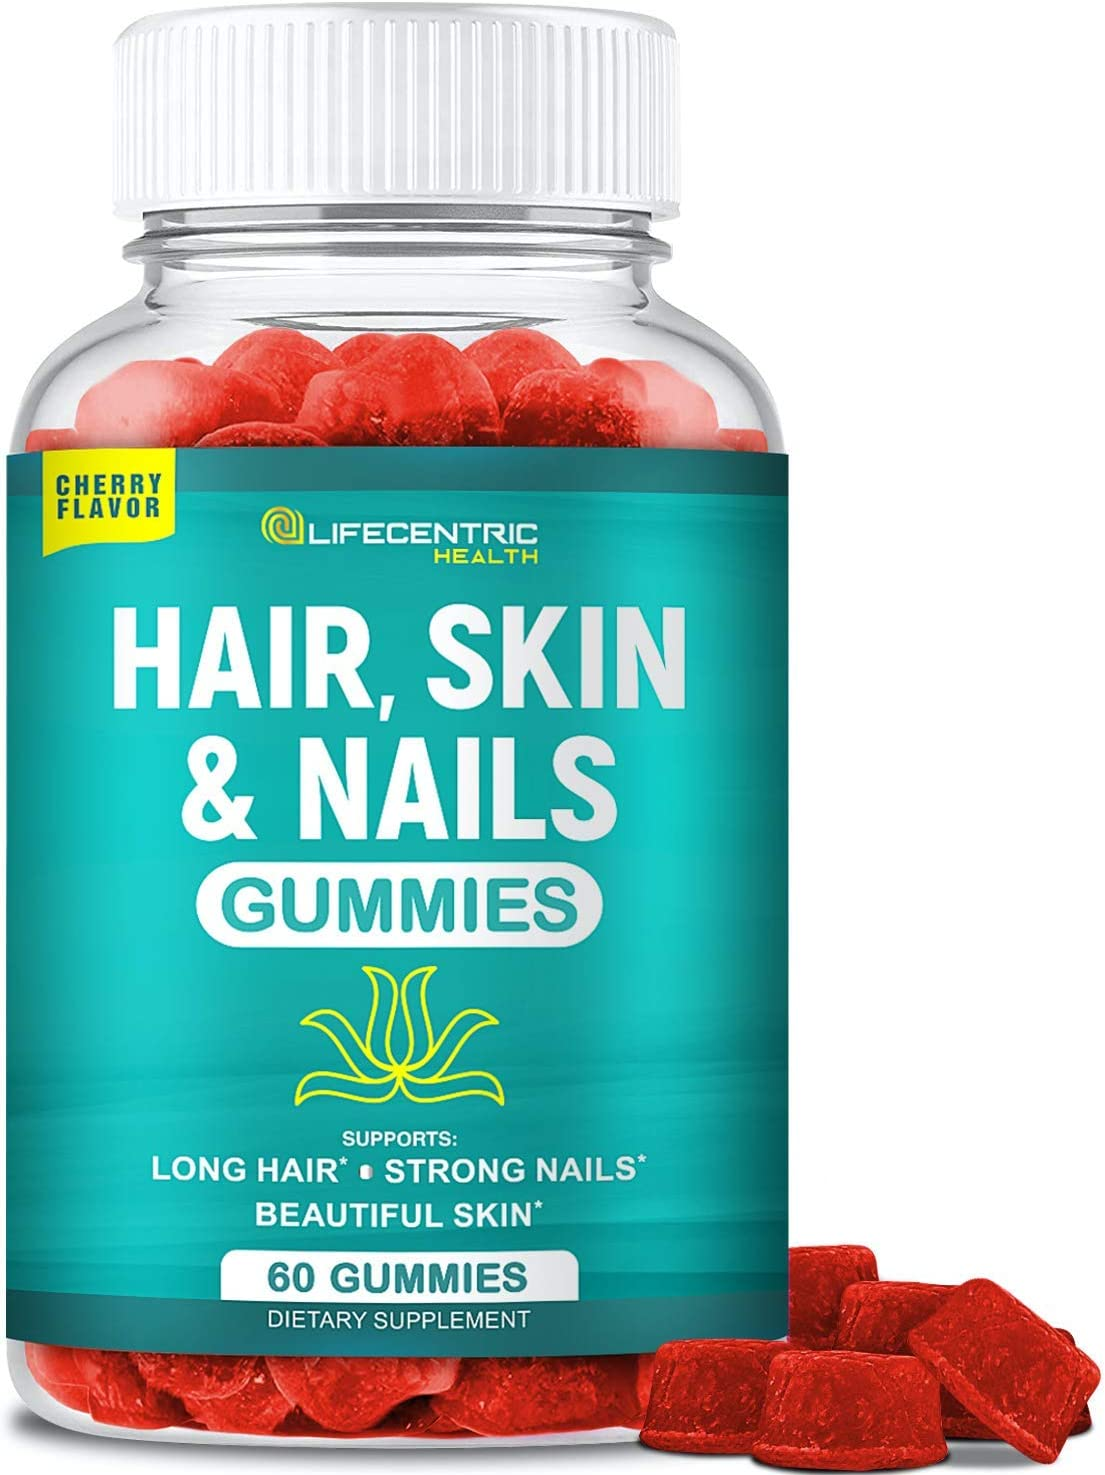 Hair Skin and Nails Gummies with High Potency Biotin 5000mcg | Tasty Cherry Hair Vitamins for Women Men & Kids | Lab Tested Gluten Free Hair Nail and Skin Vitamins Plus Biotin Gummies for Hair Growth